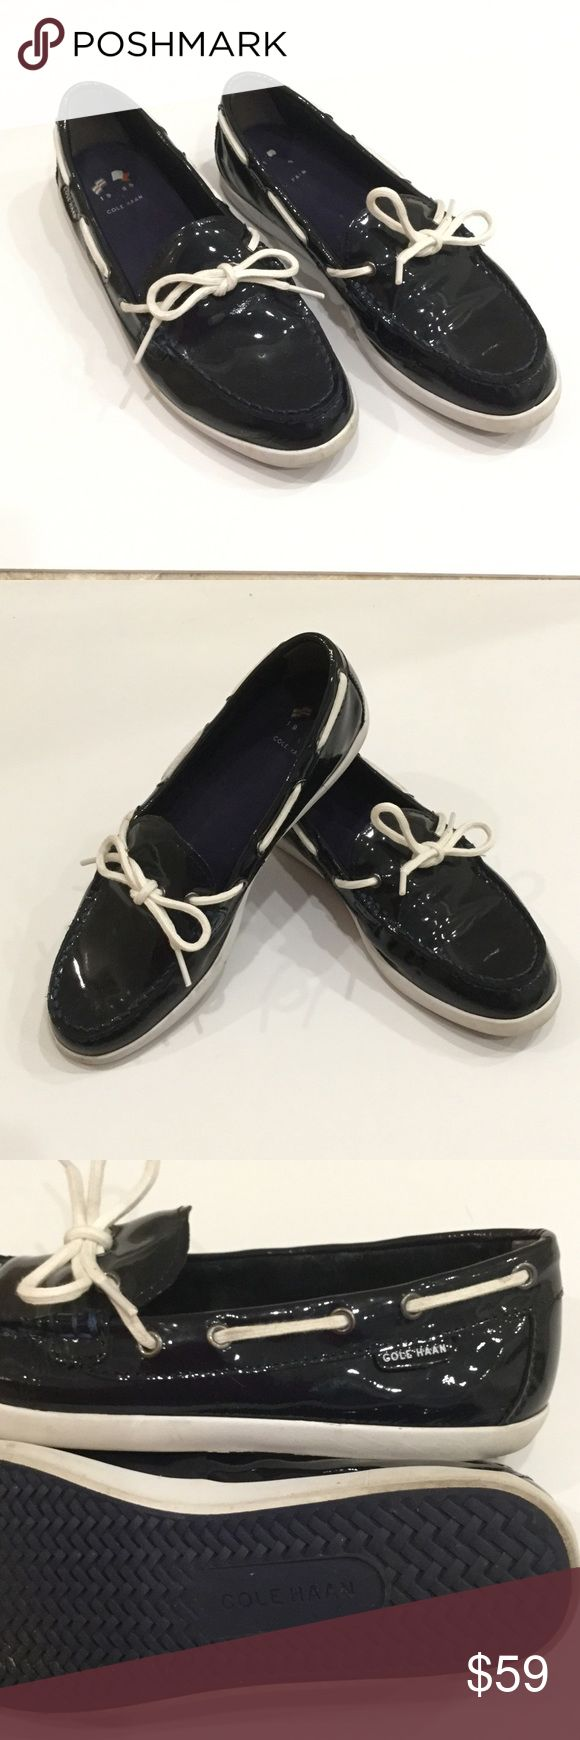 COLE HAAN navy patent boat shoe size 9 COLE HAAN navy patent boat shoe with white soles and laces. EUC. size 9 Cole Haan Shoes Flats & Loafers